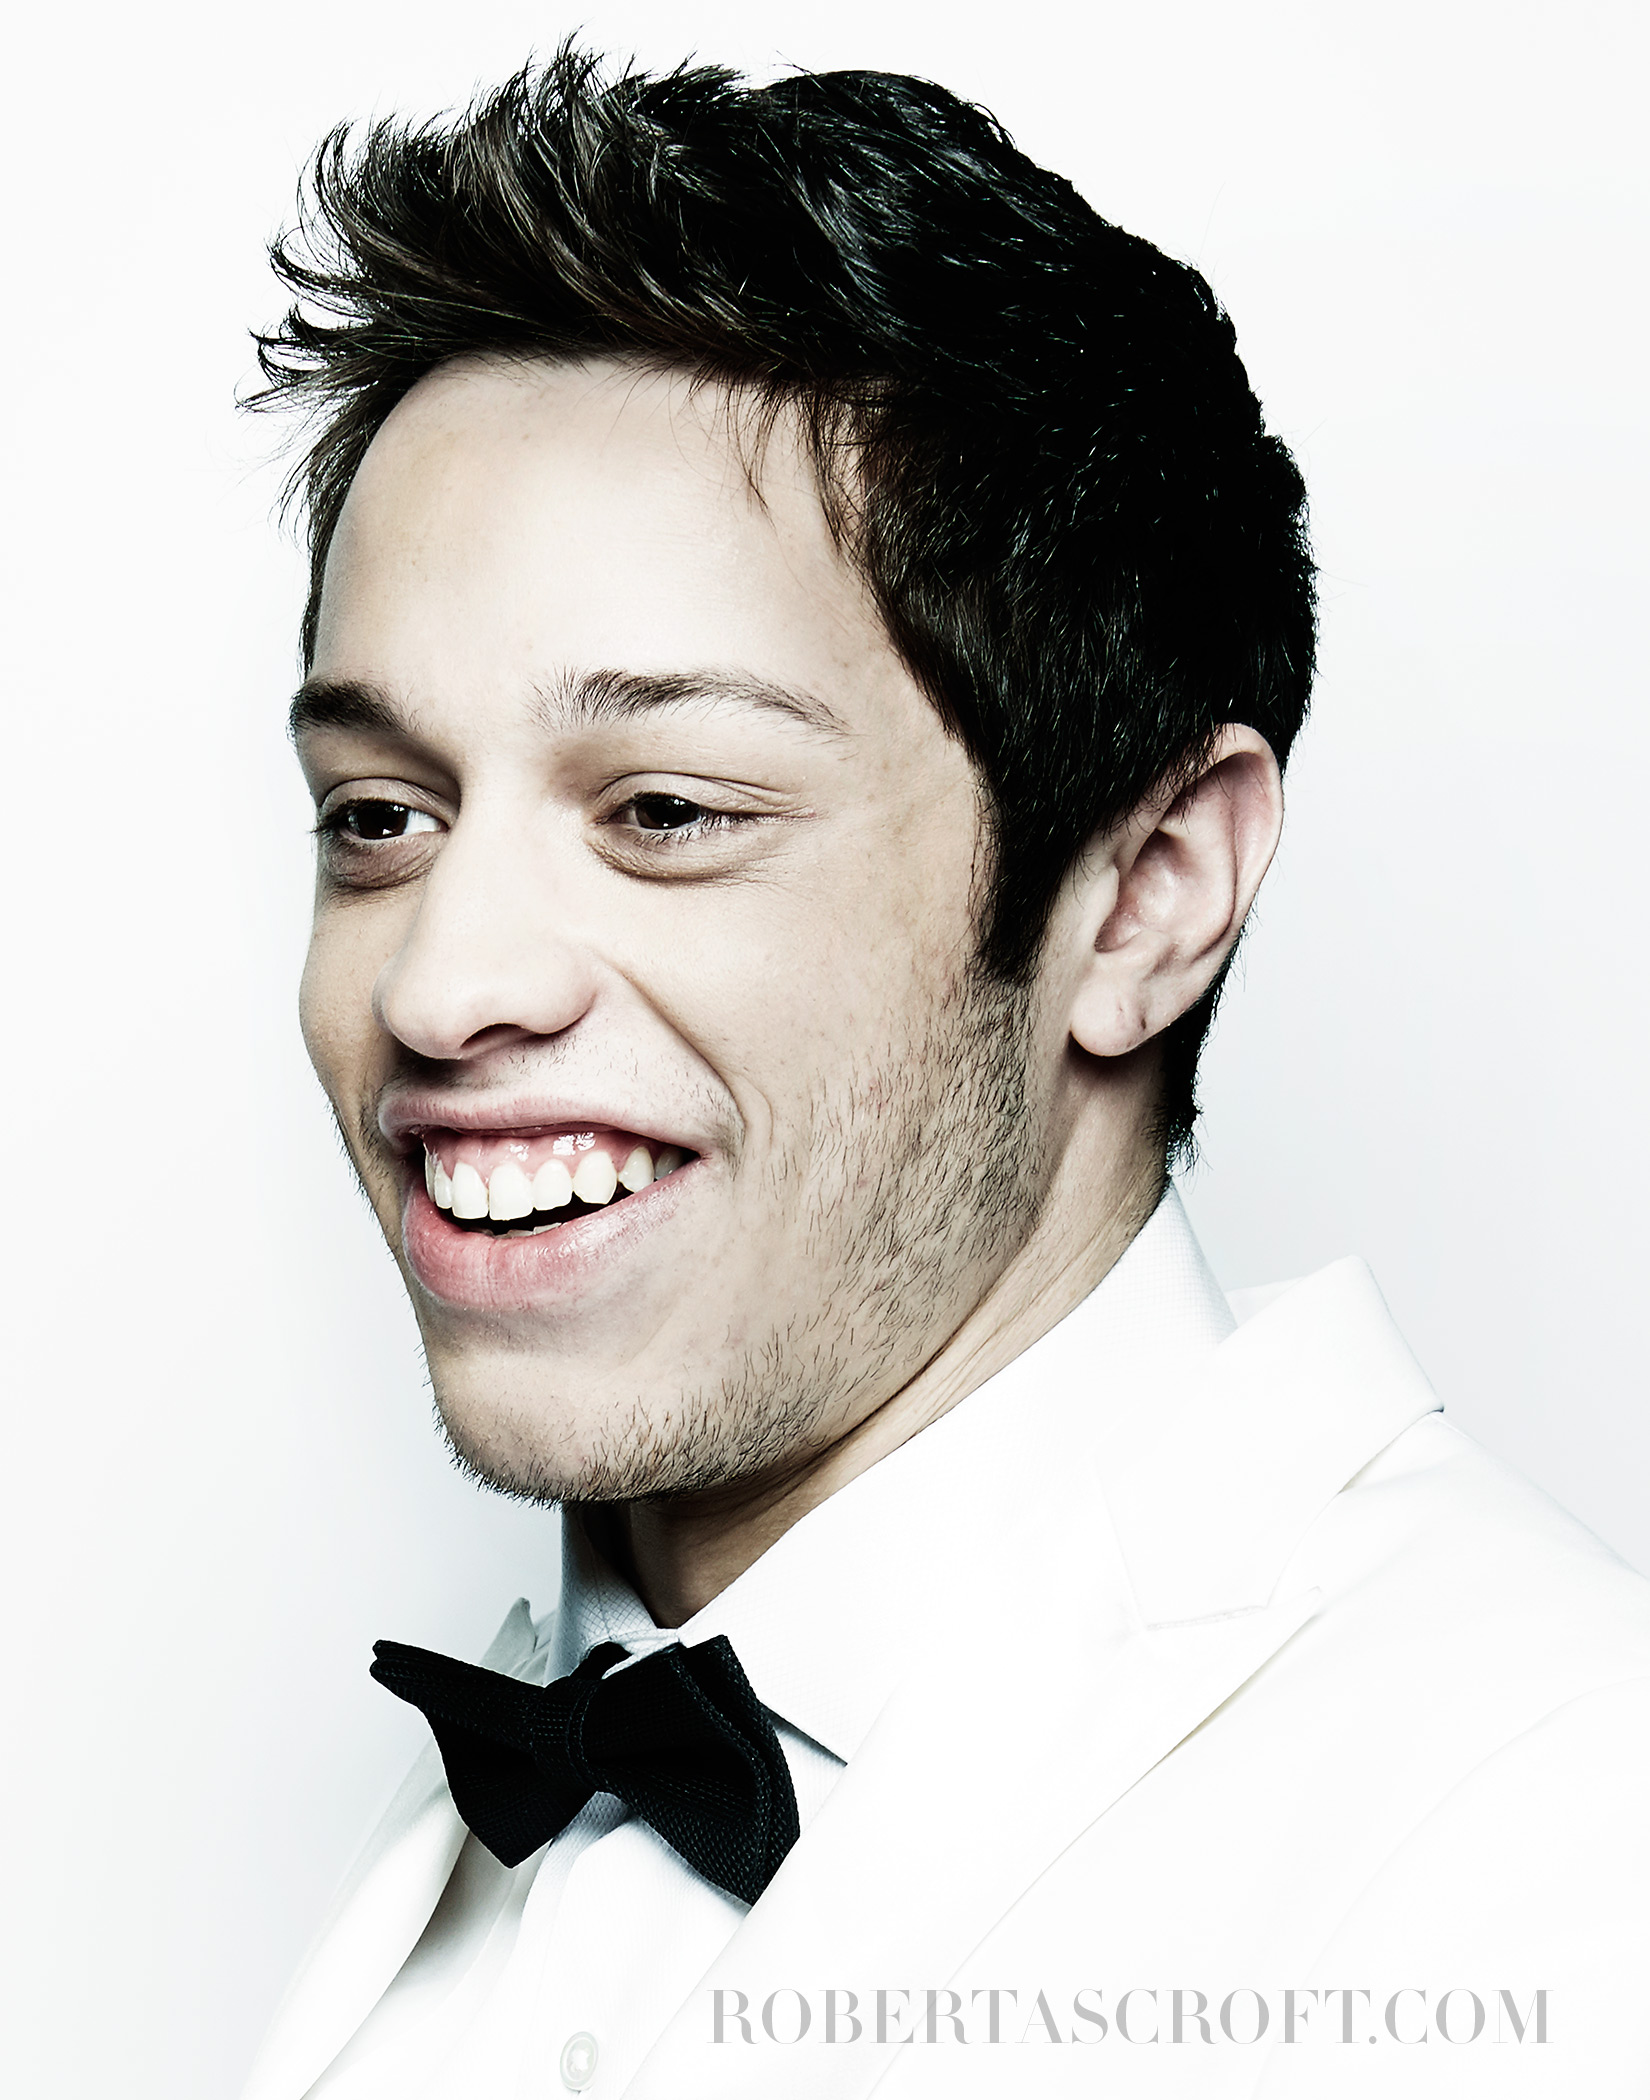 Pete-DAVIDSON-BY-ROBERT-ASCROFT